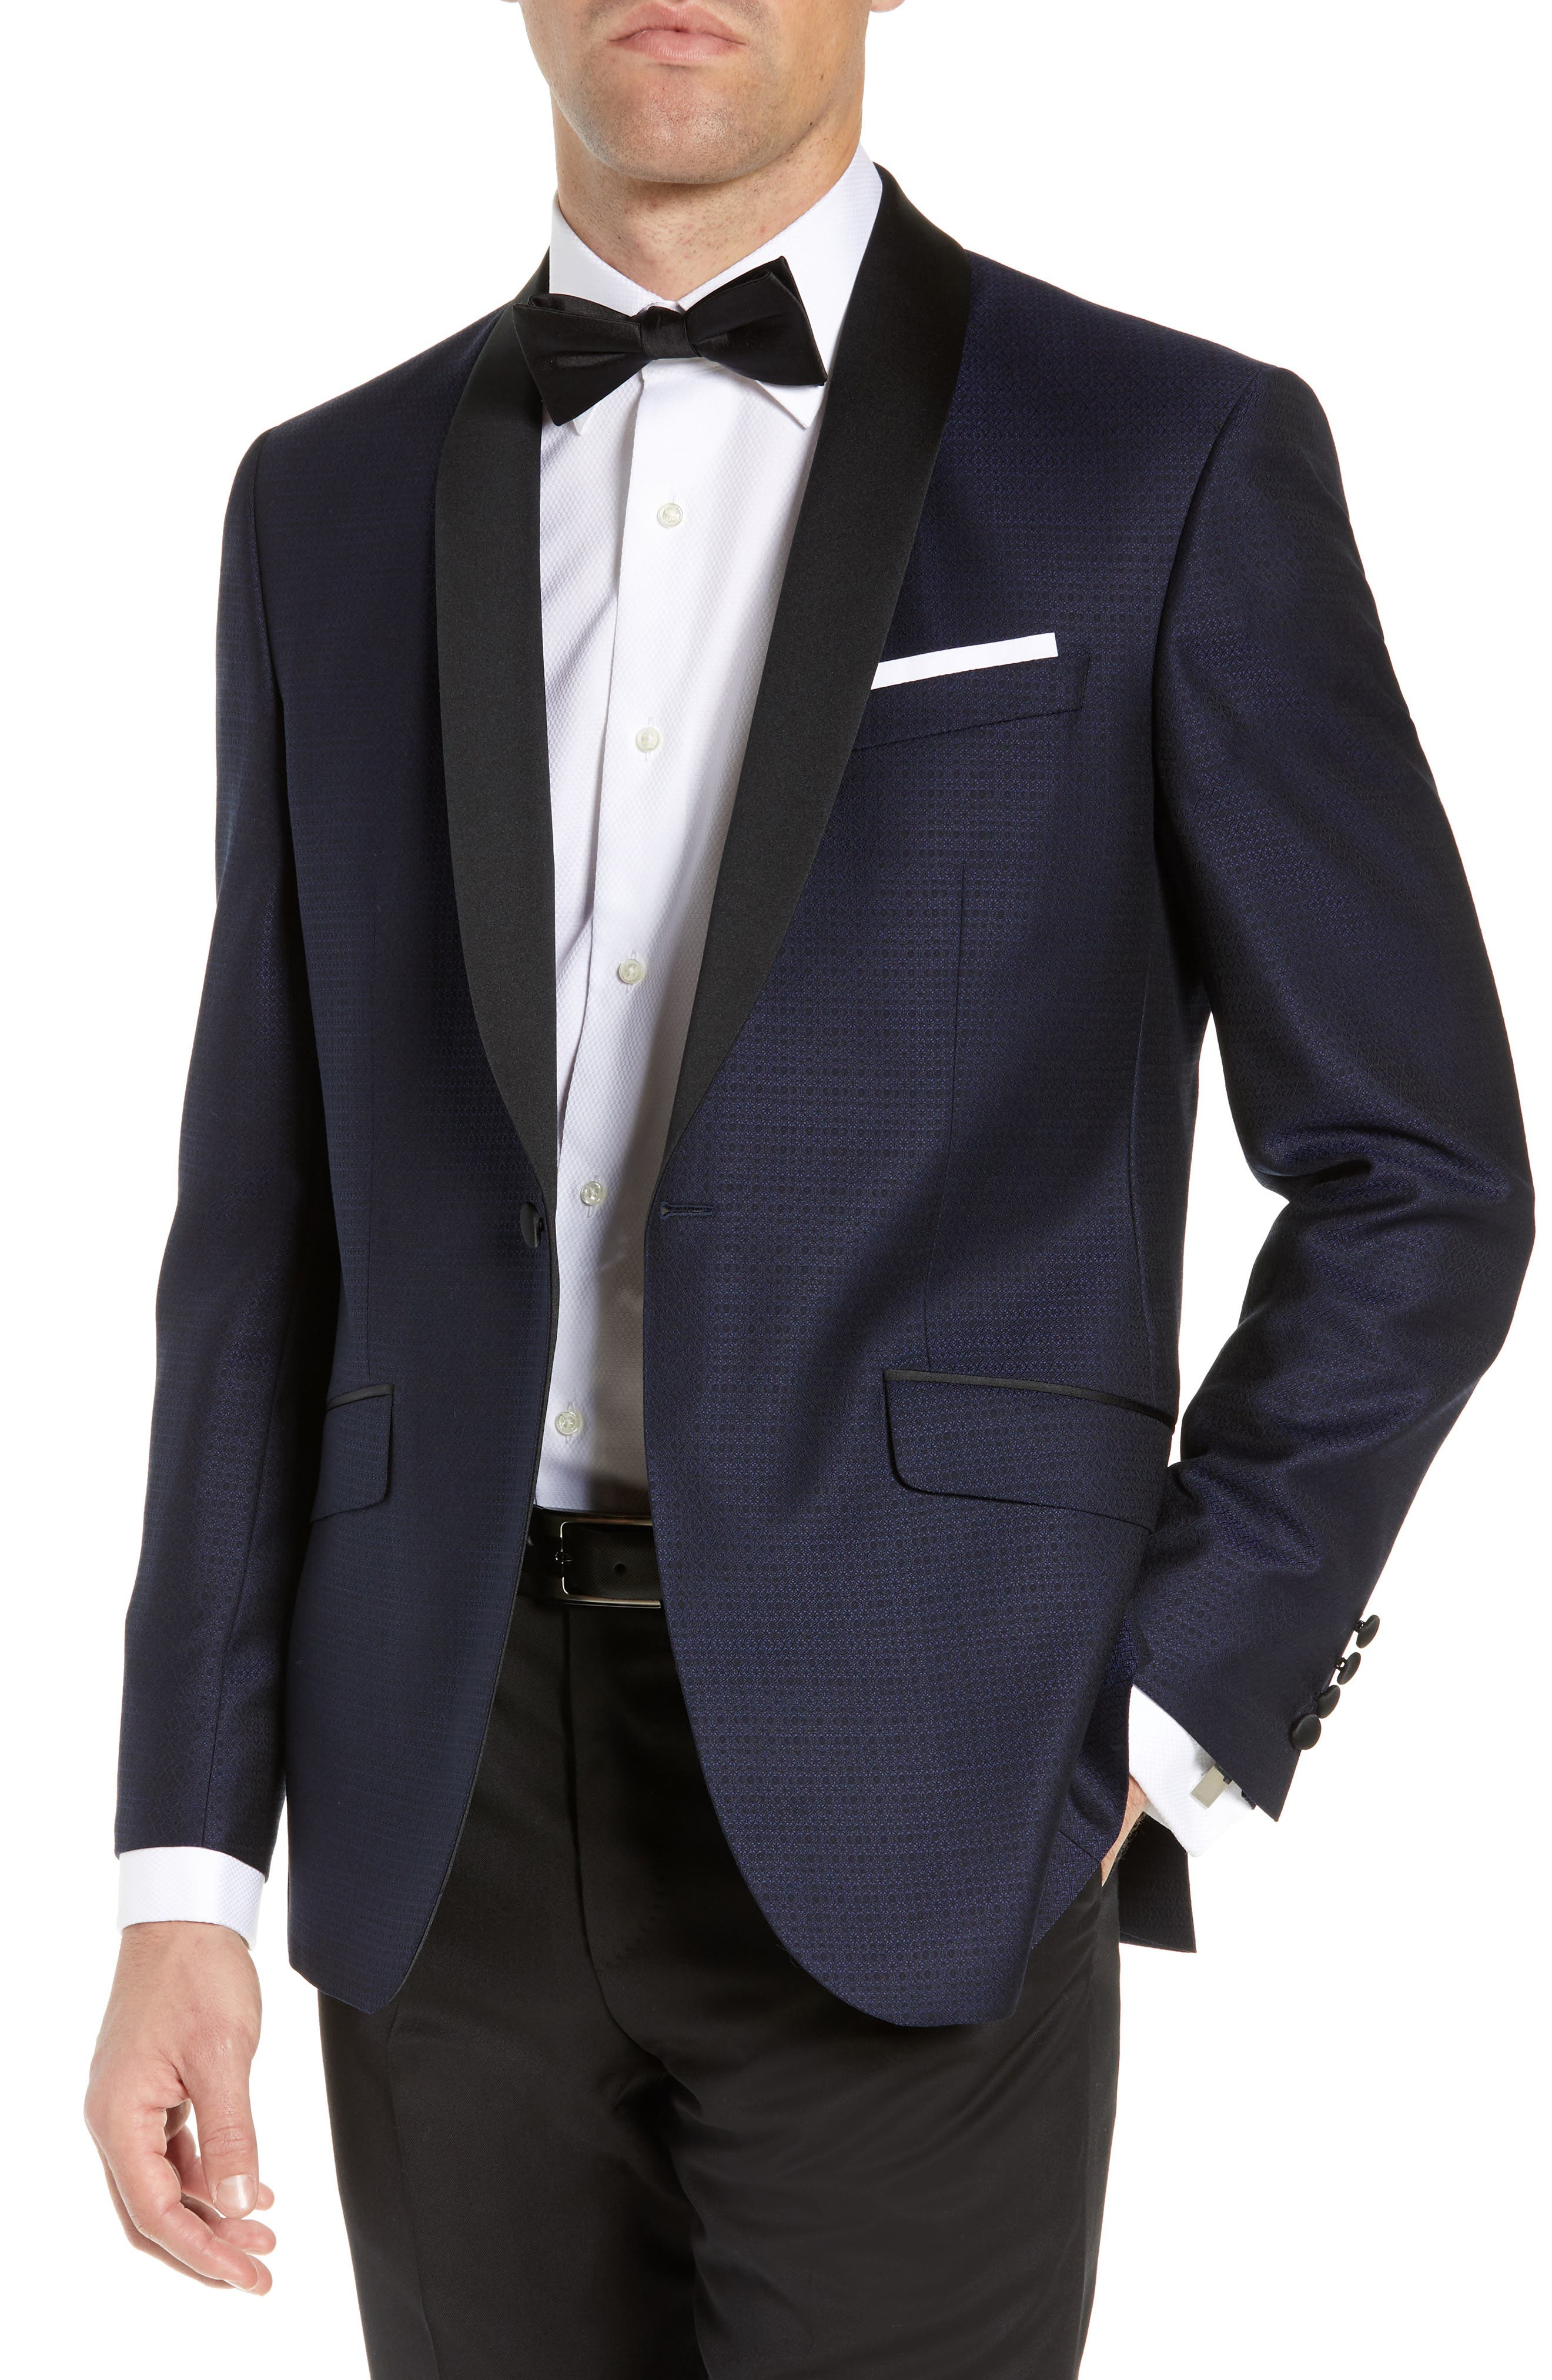 410581b8a1f Men's Ted Baker London Tuxedos: Wedding Suits & Formal Wear | Nordstrom